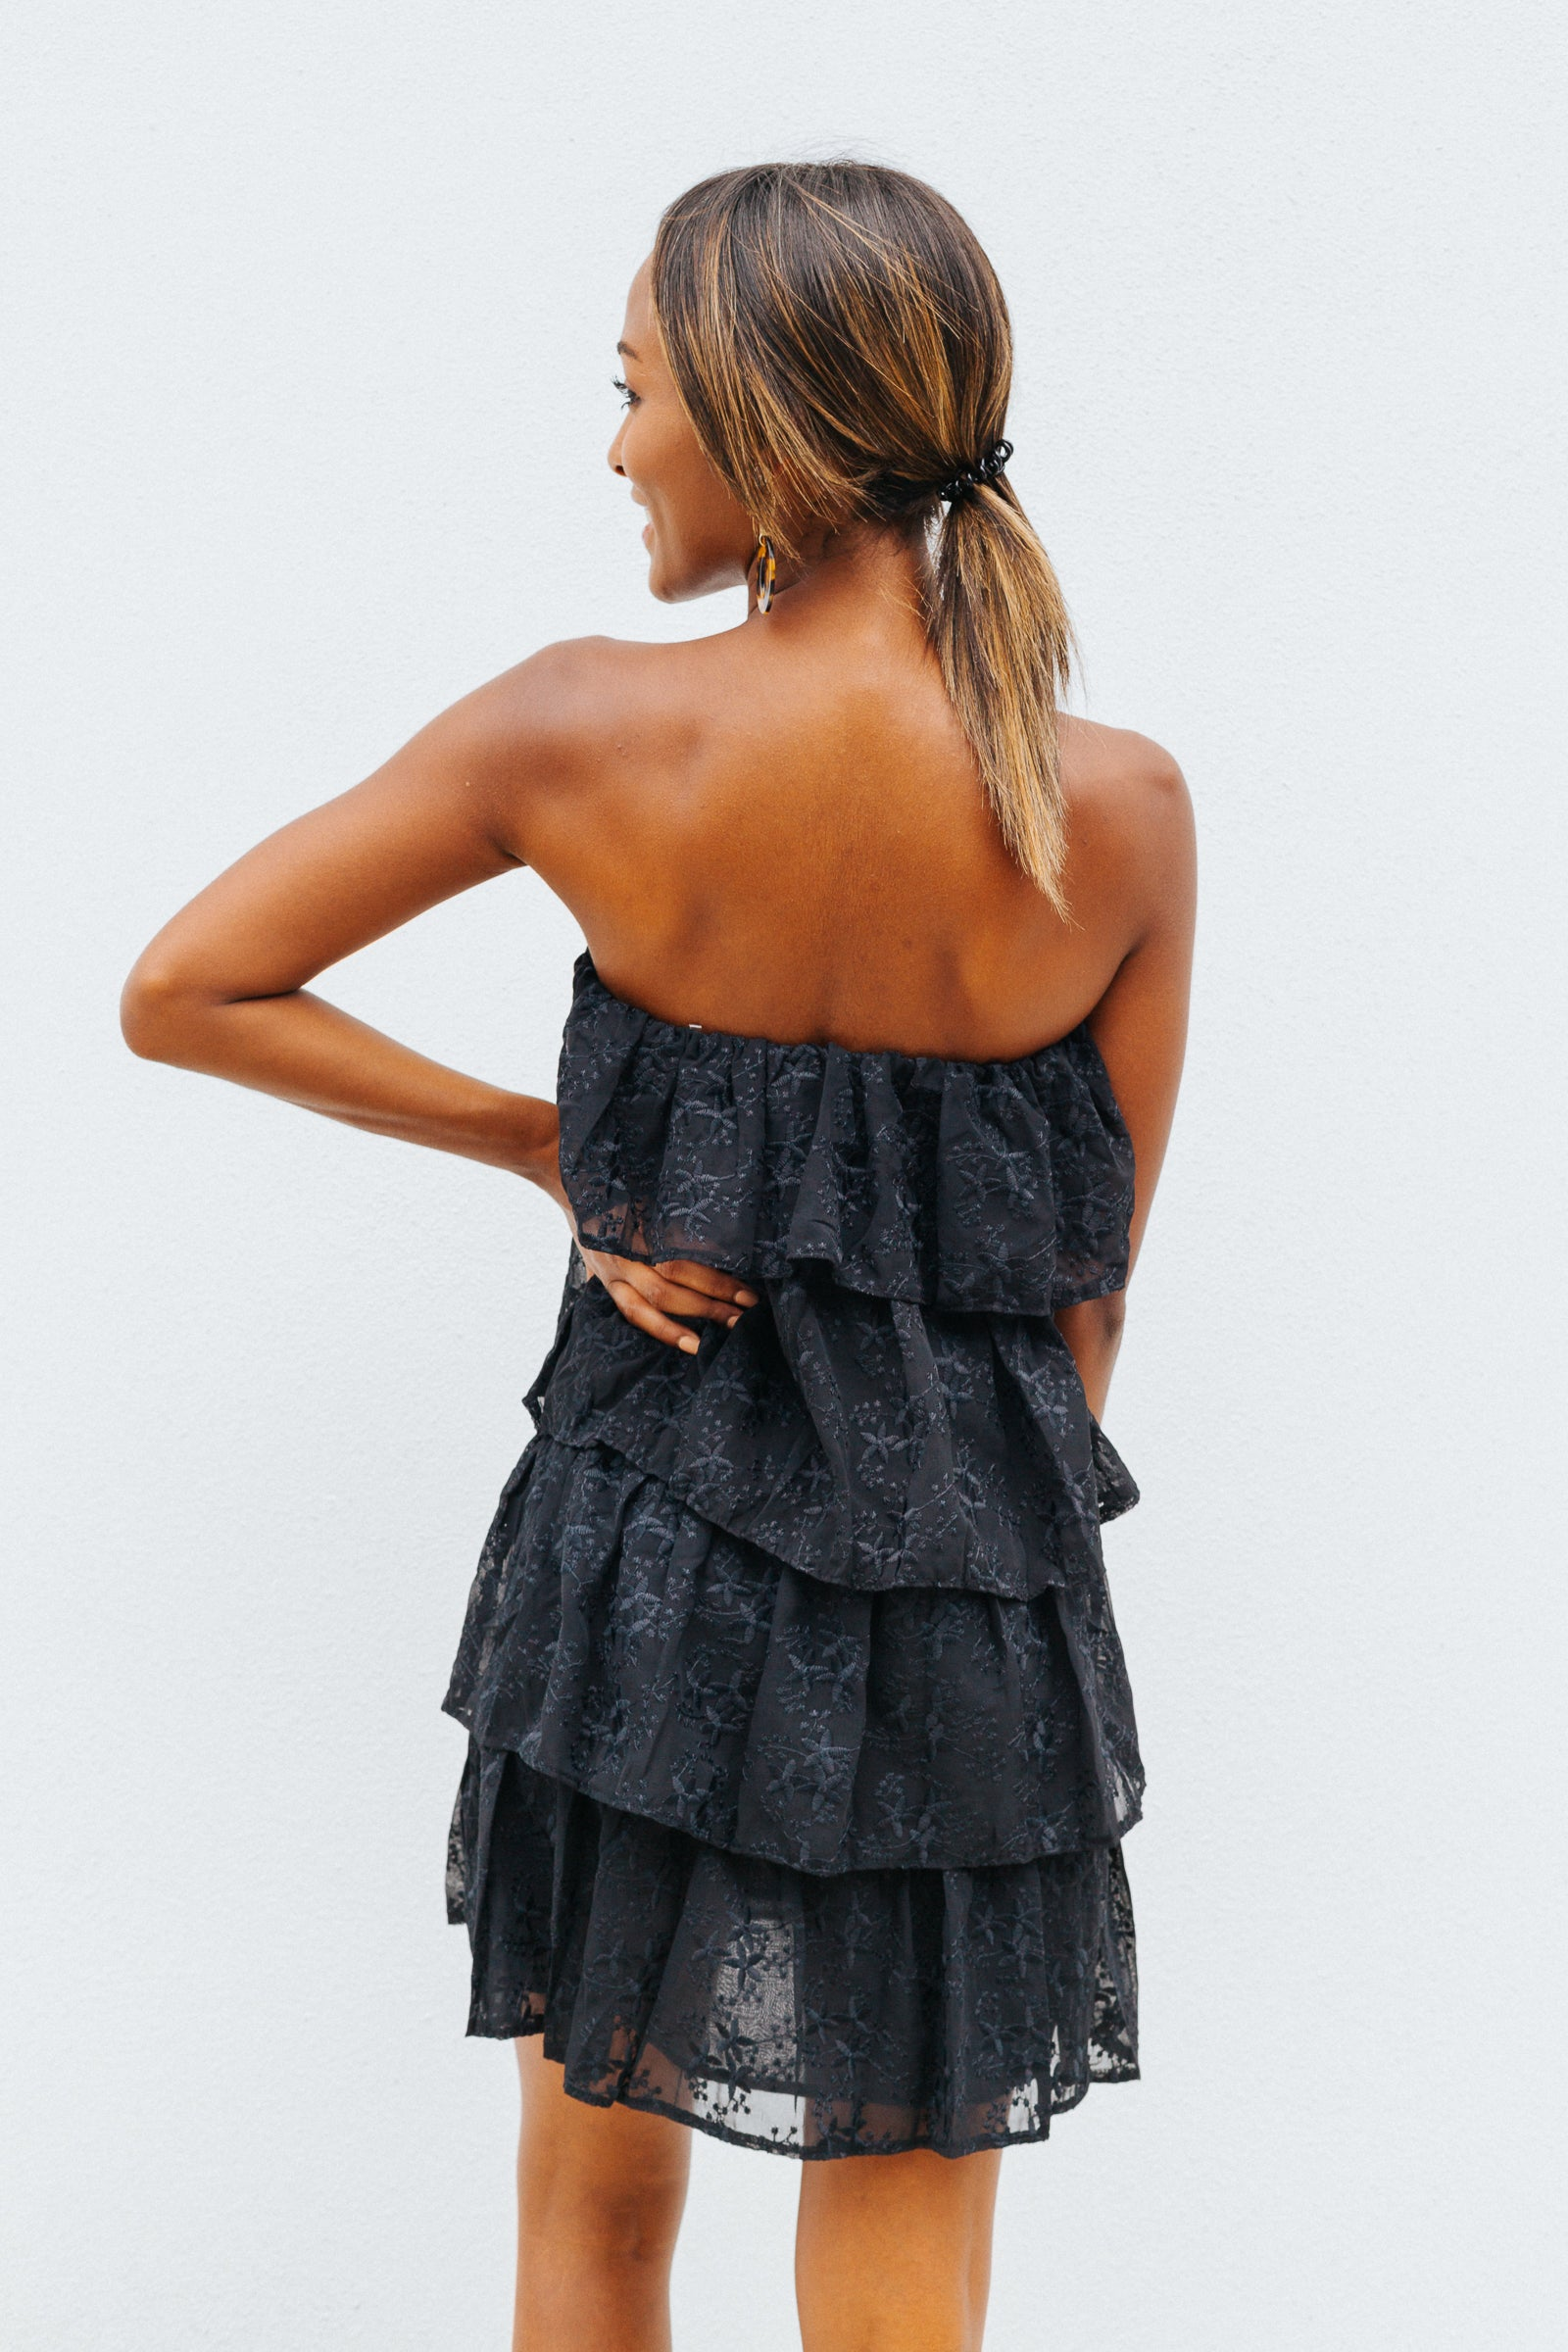 Black floral and leaf prints are embroidered on this gorgeous black mini dress. It has a straight neckline and goes down into a ruffle layered and oversized dress silhouette.